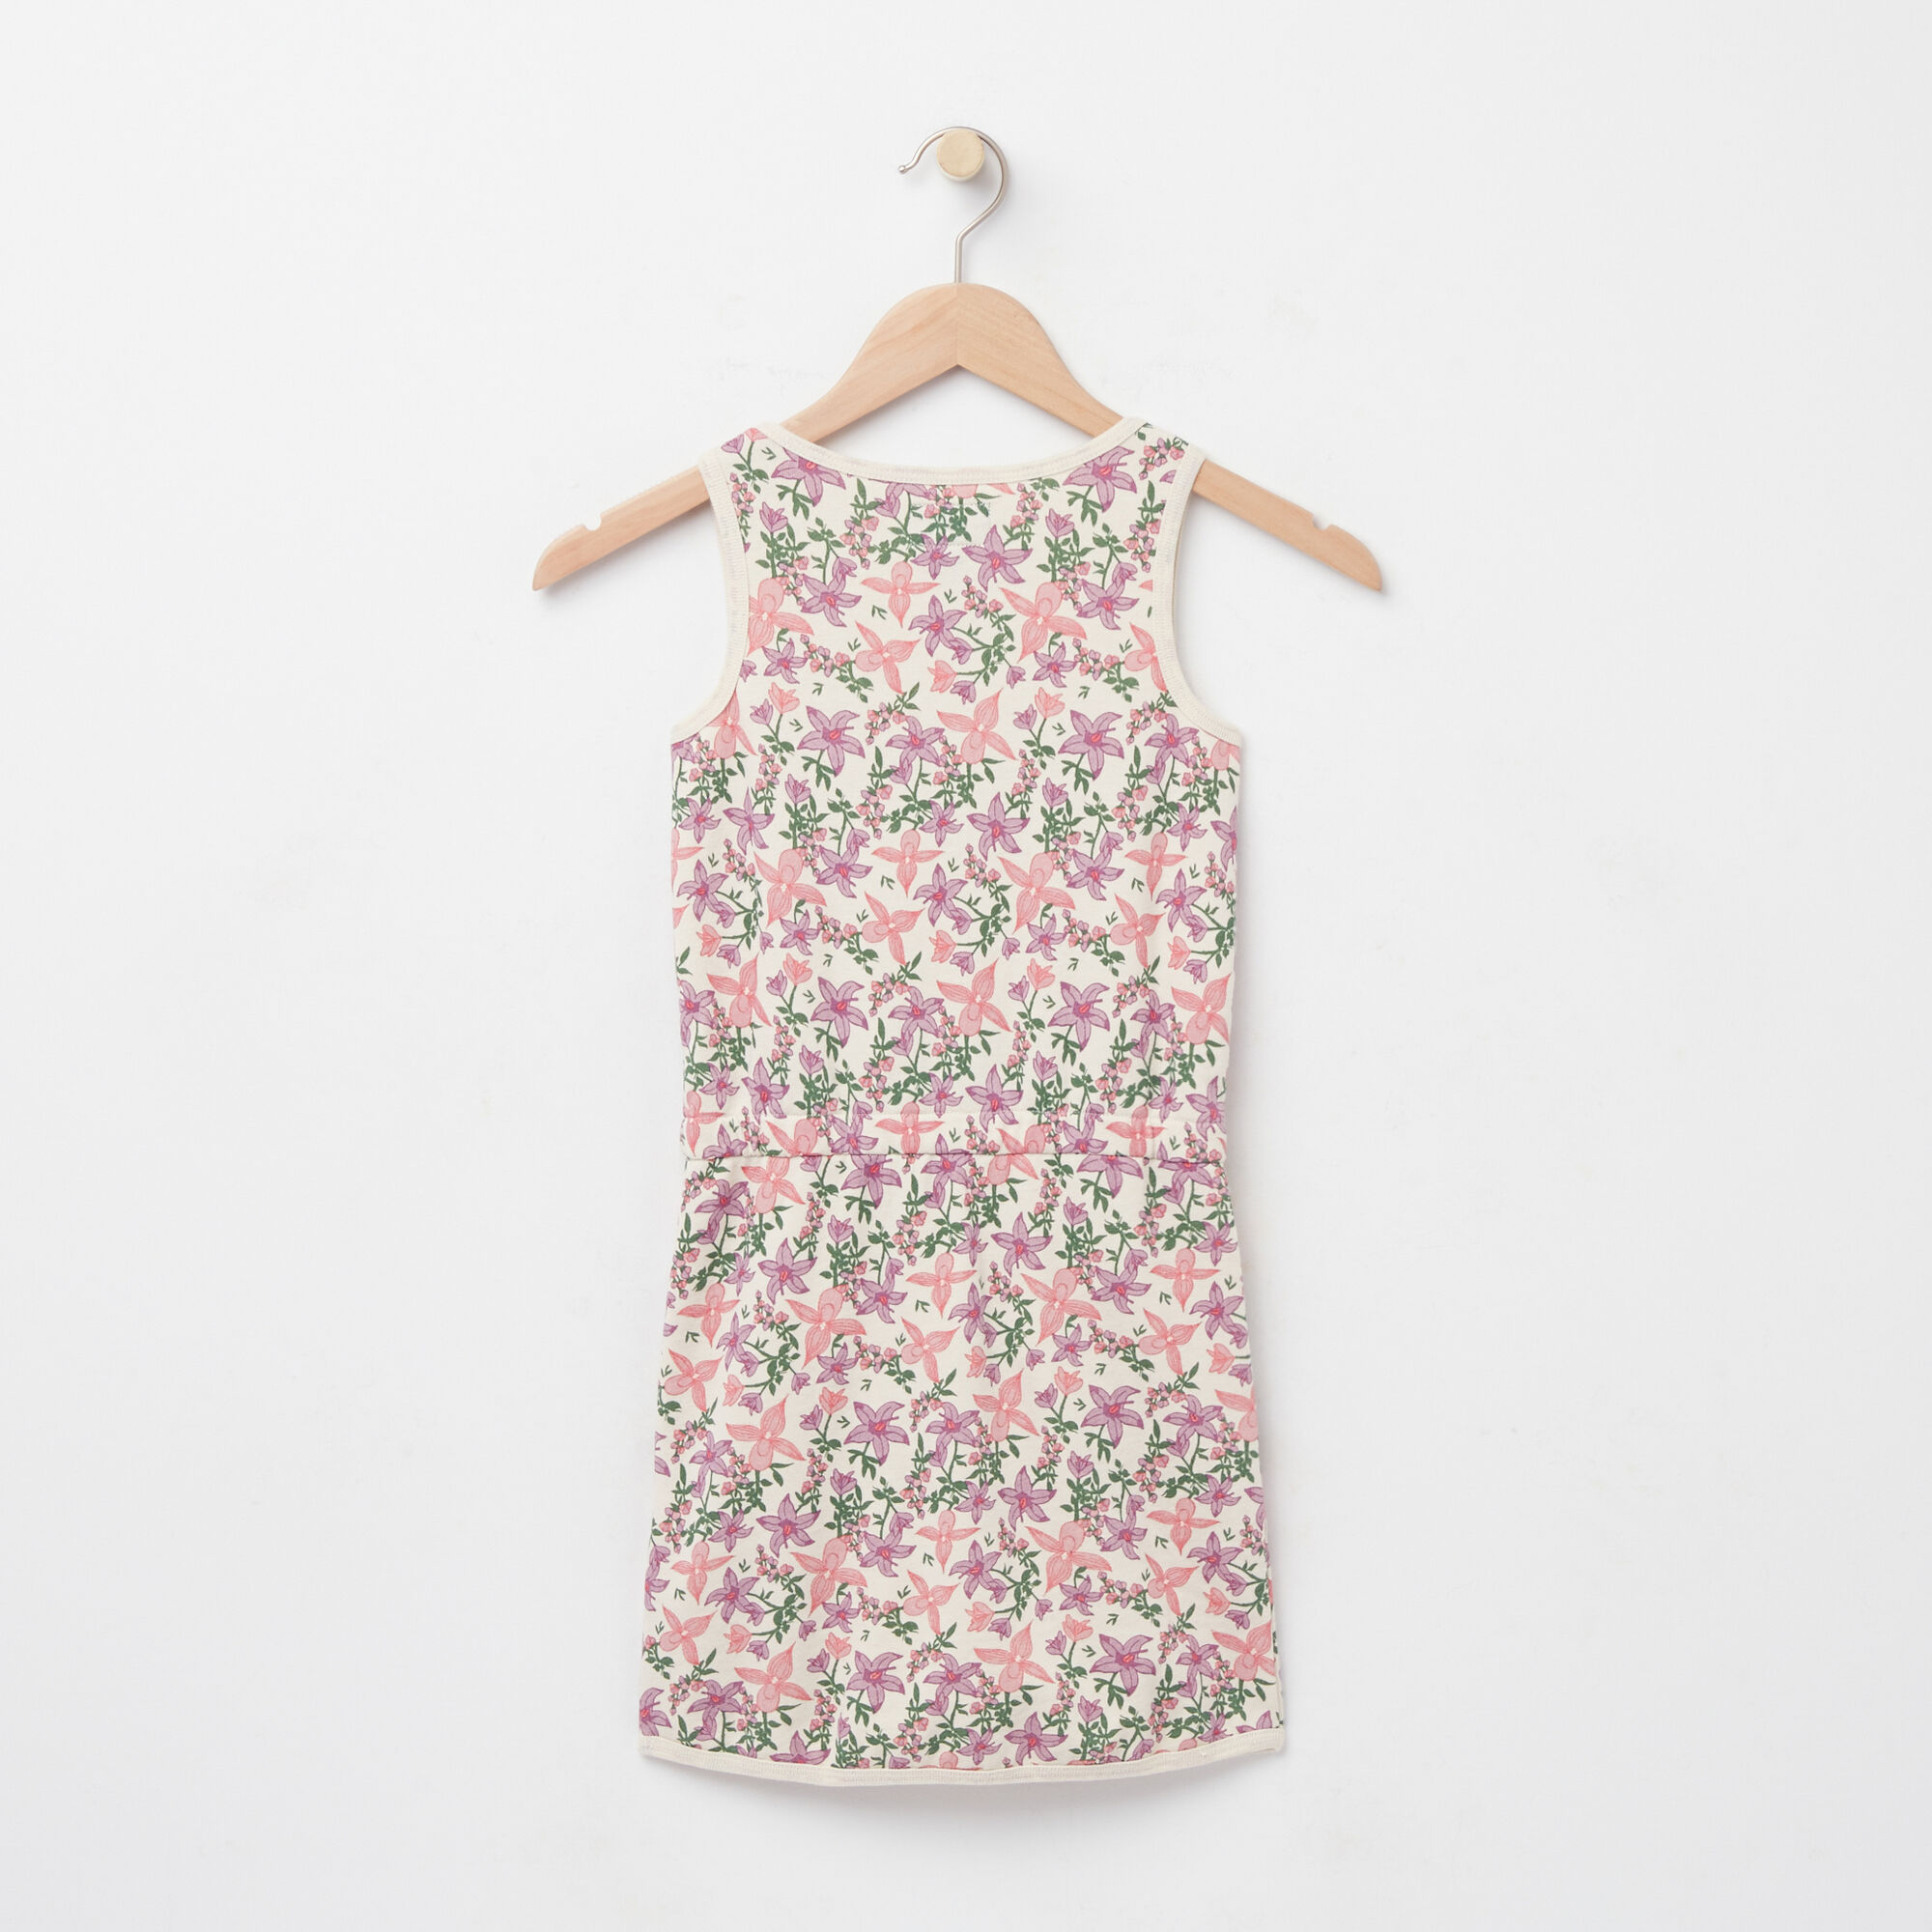 Filles Robe Camisole Valleyfield